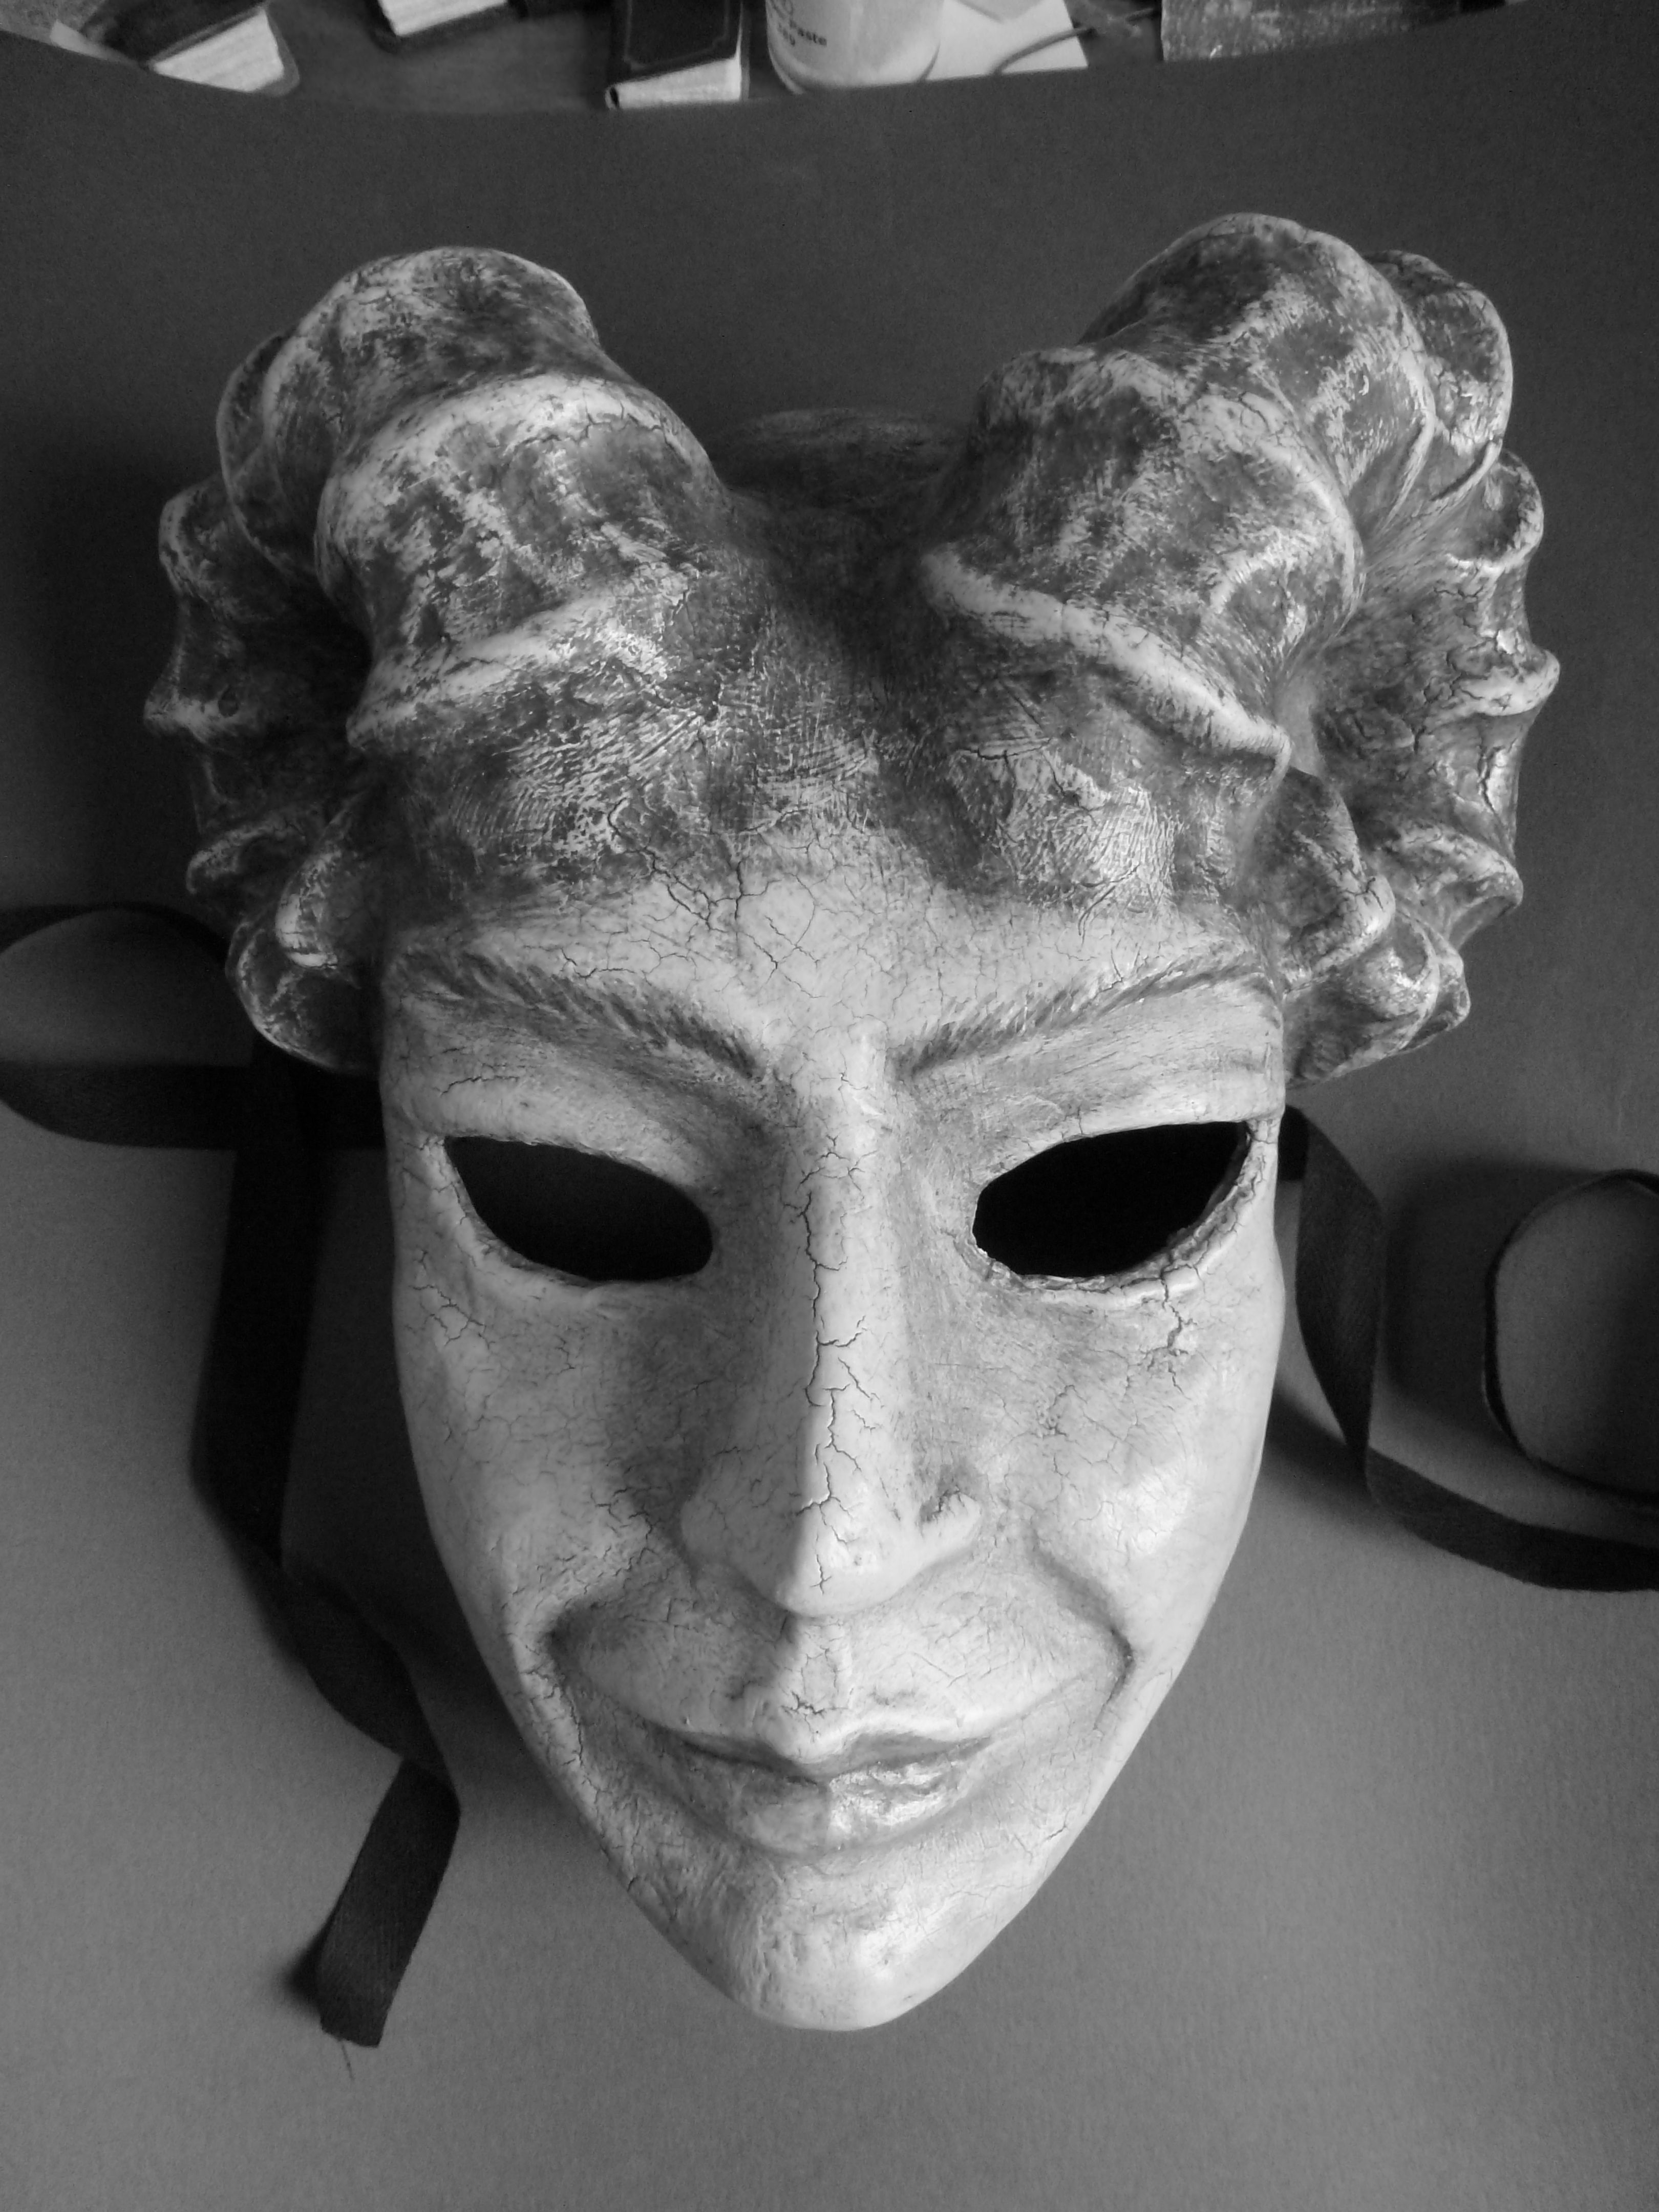 The mask I made at Agostino Dessi's studio in Florence